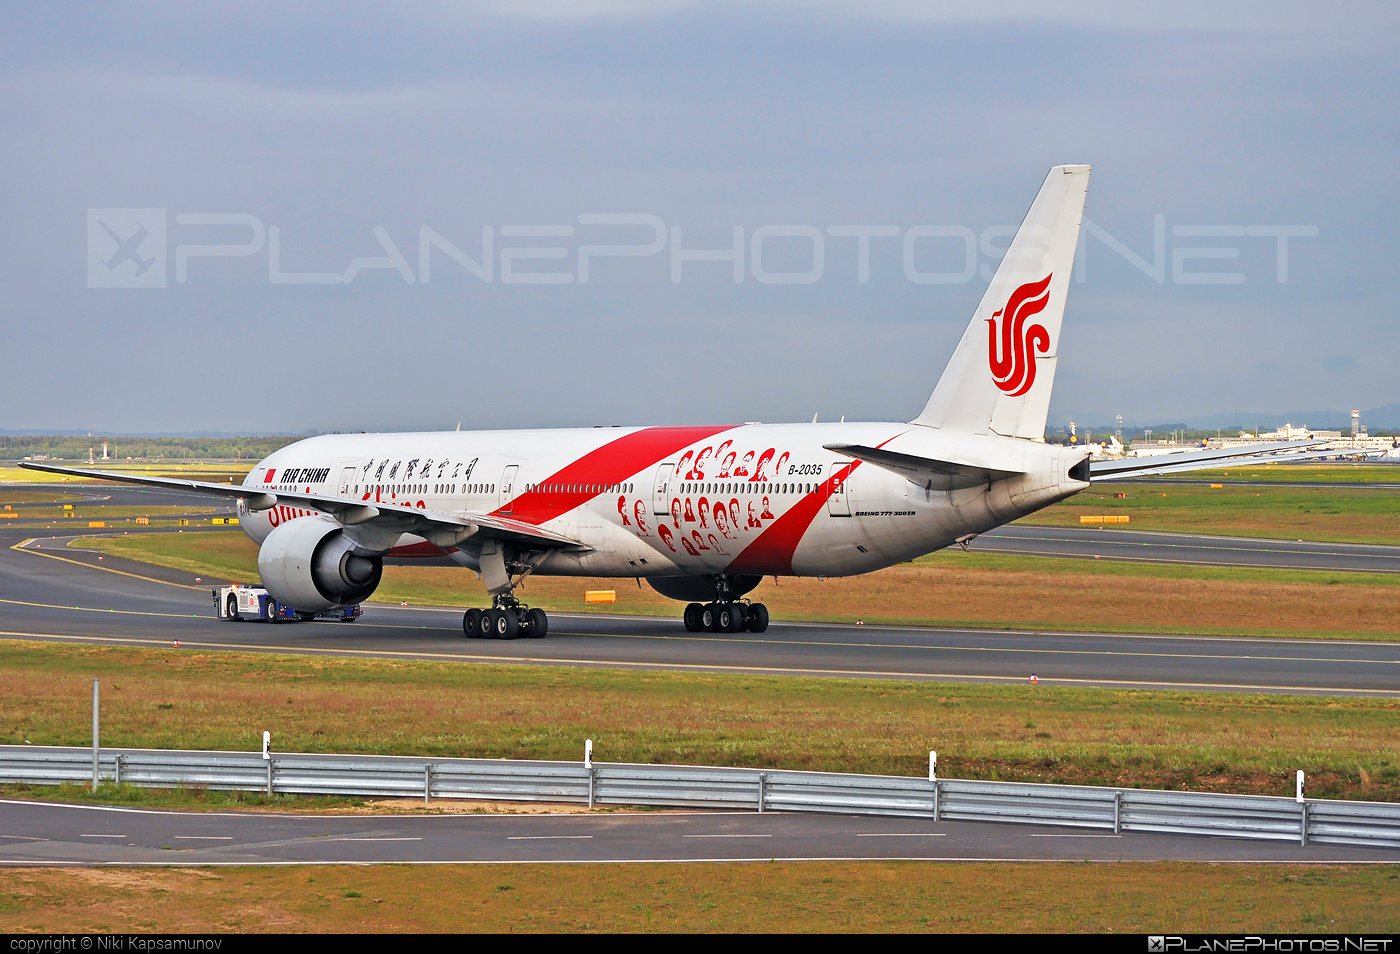 Boeing 777-300ER - B-2035 operated by Air China #airchina #b777 #b777er #boeing #boeing777 #tripleseven